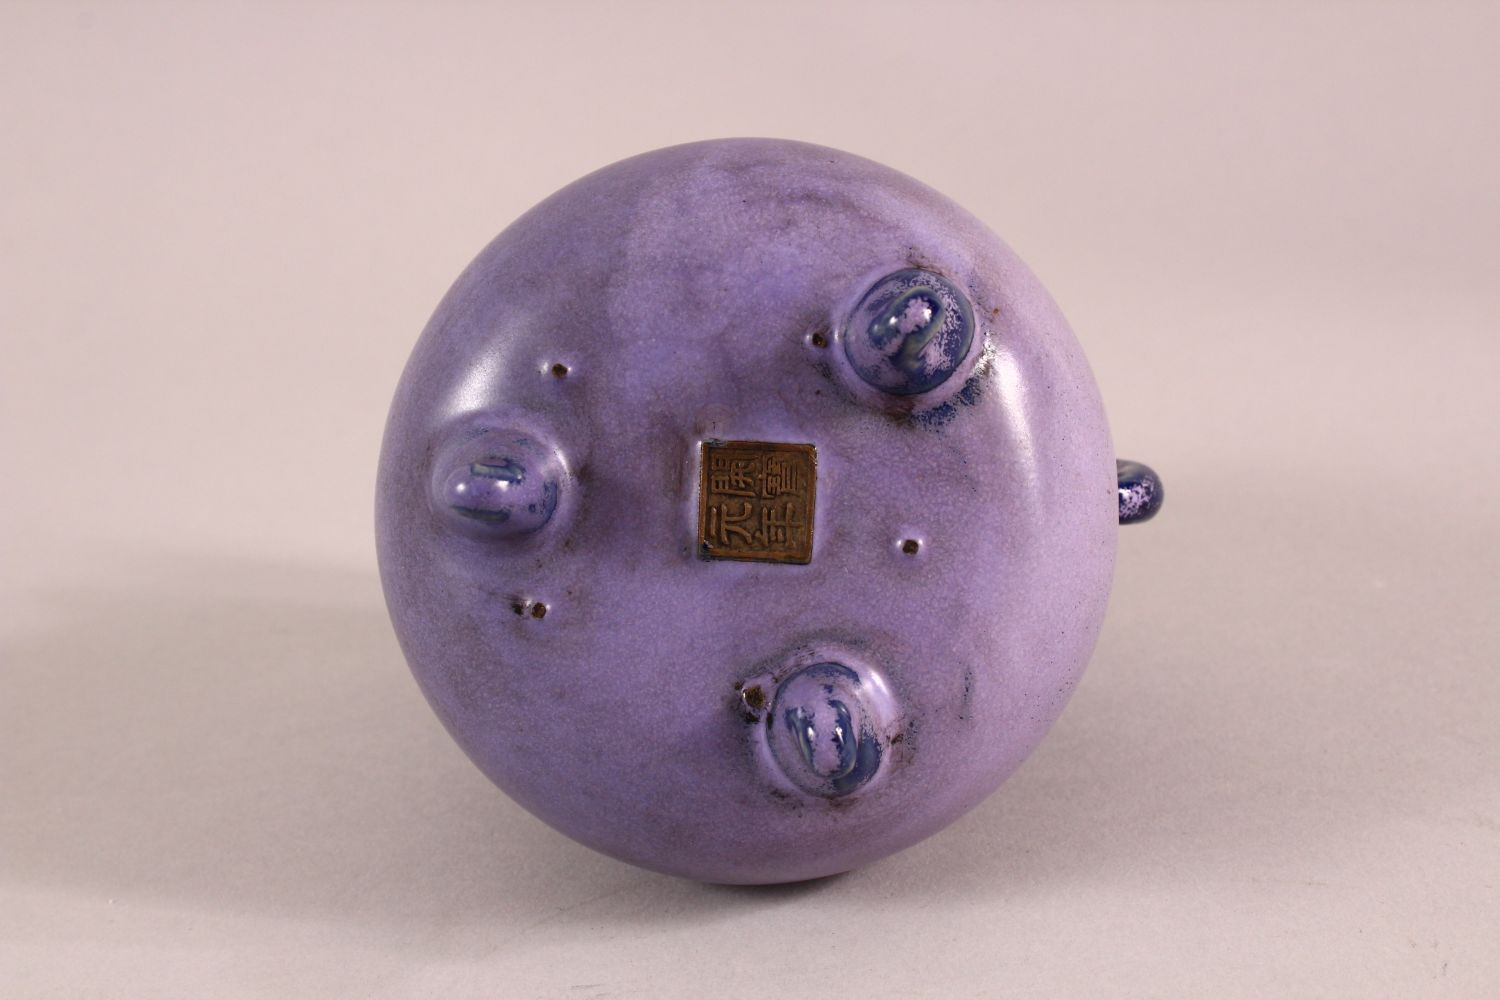 A CHINESE SONG STYLE AUBERGINE GLAZE WINE POT, with tripod feet, the base with a mark, 13cm high. - Image 5 of 6